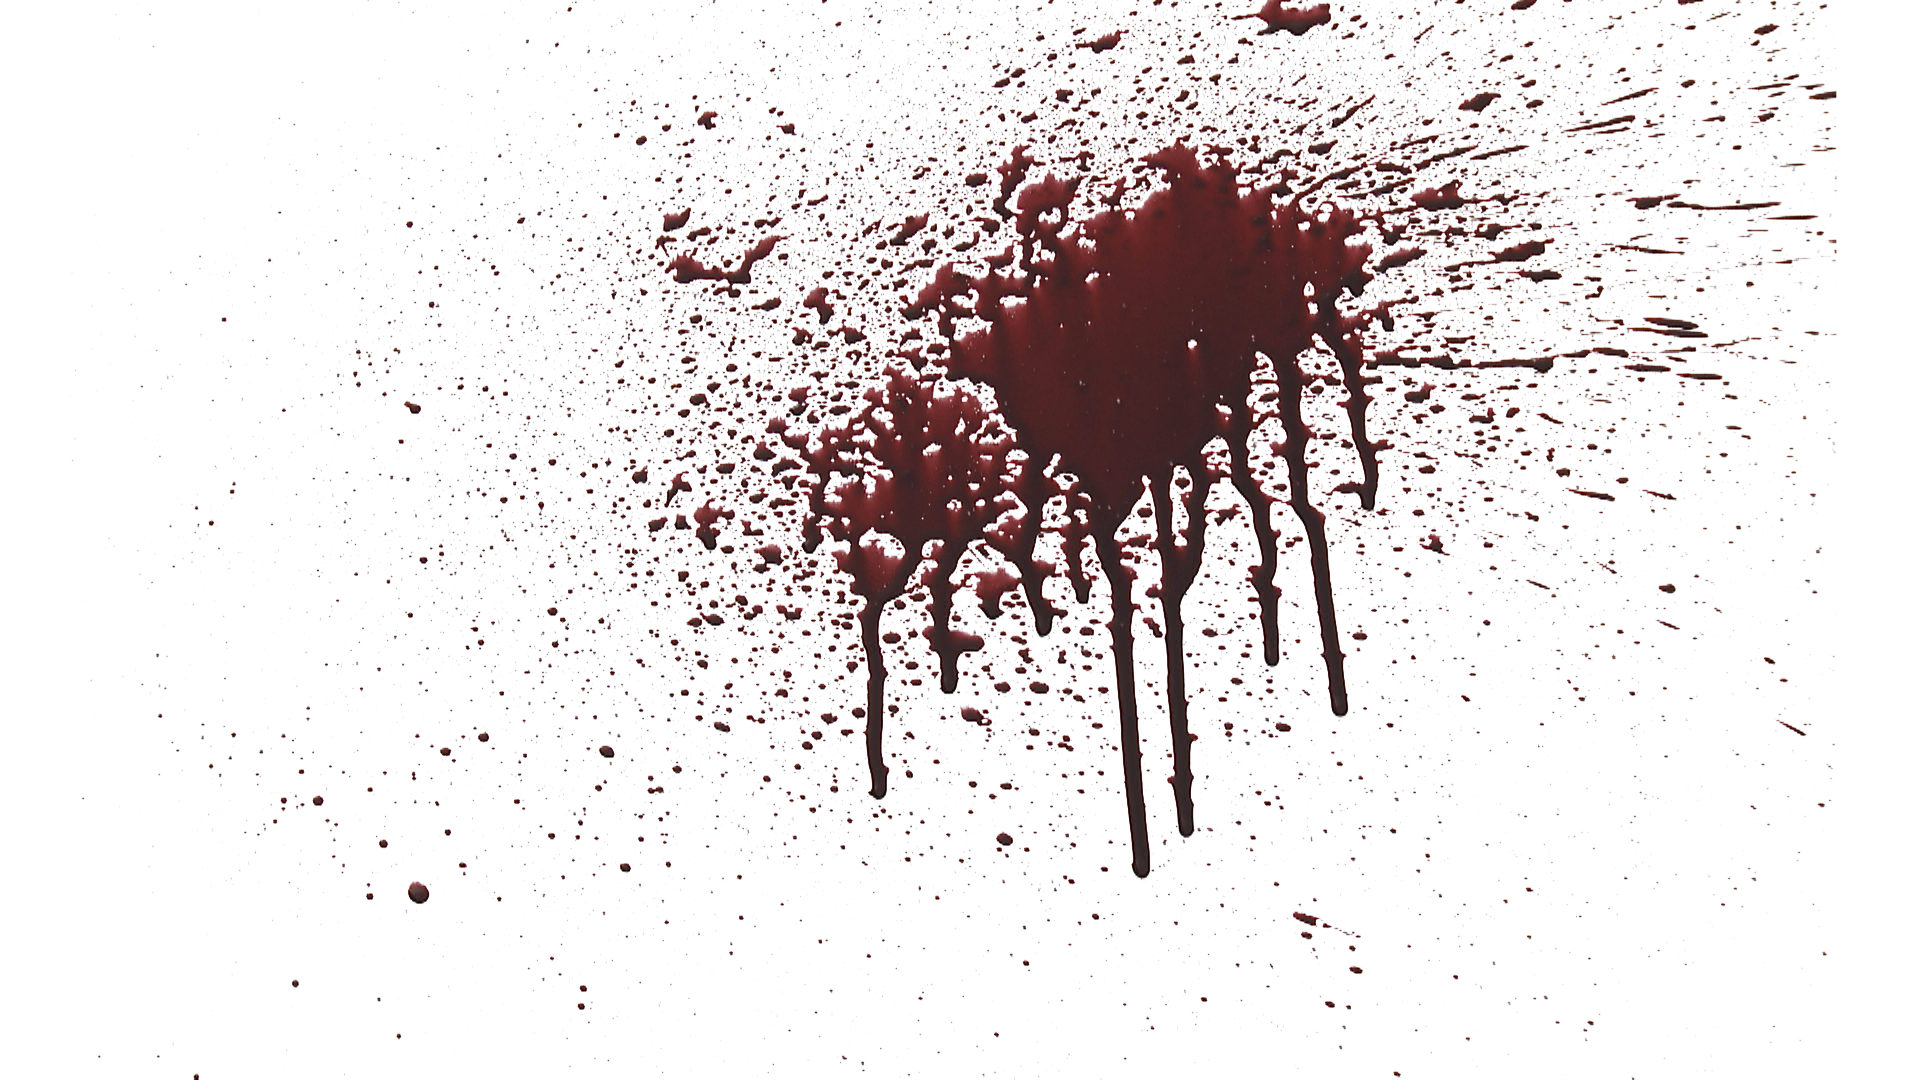 Blood effect png. Transparent images all image